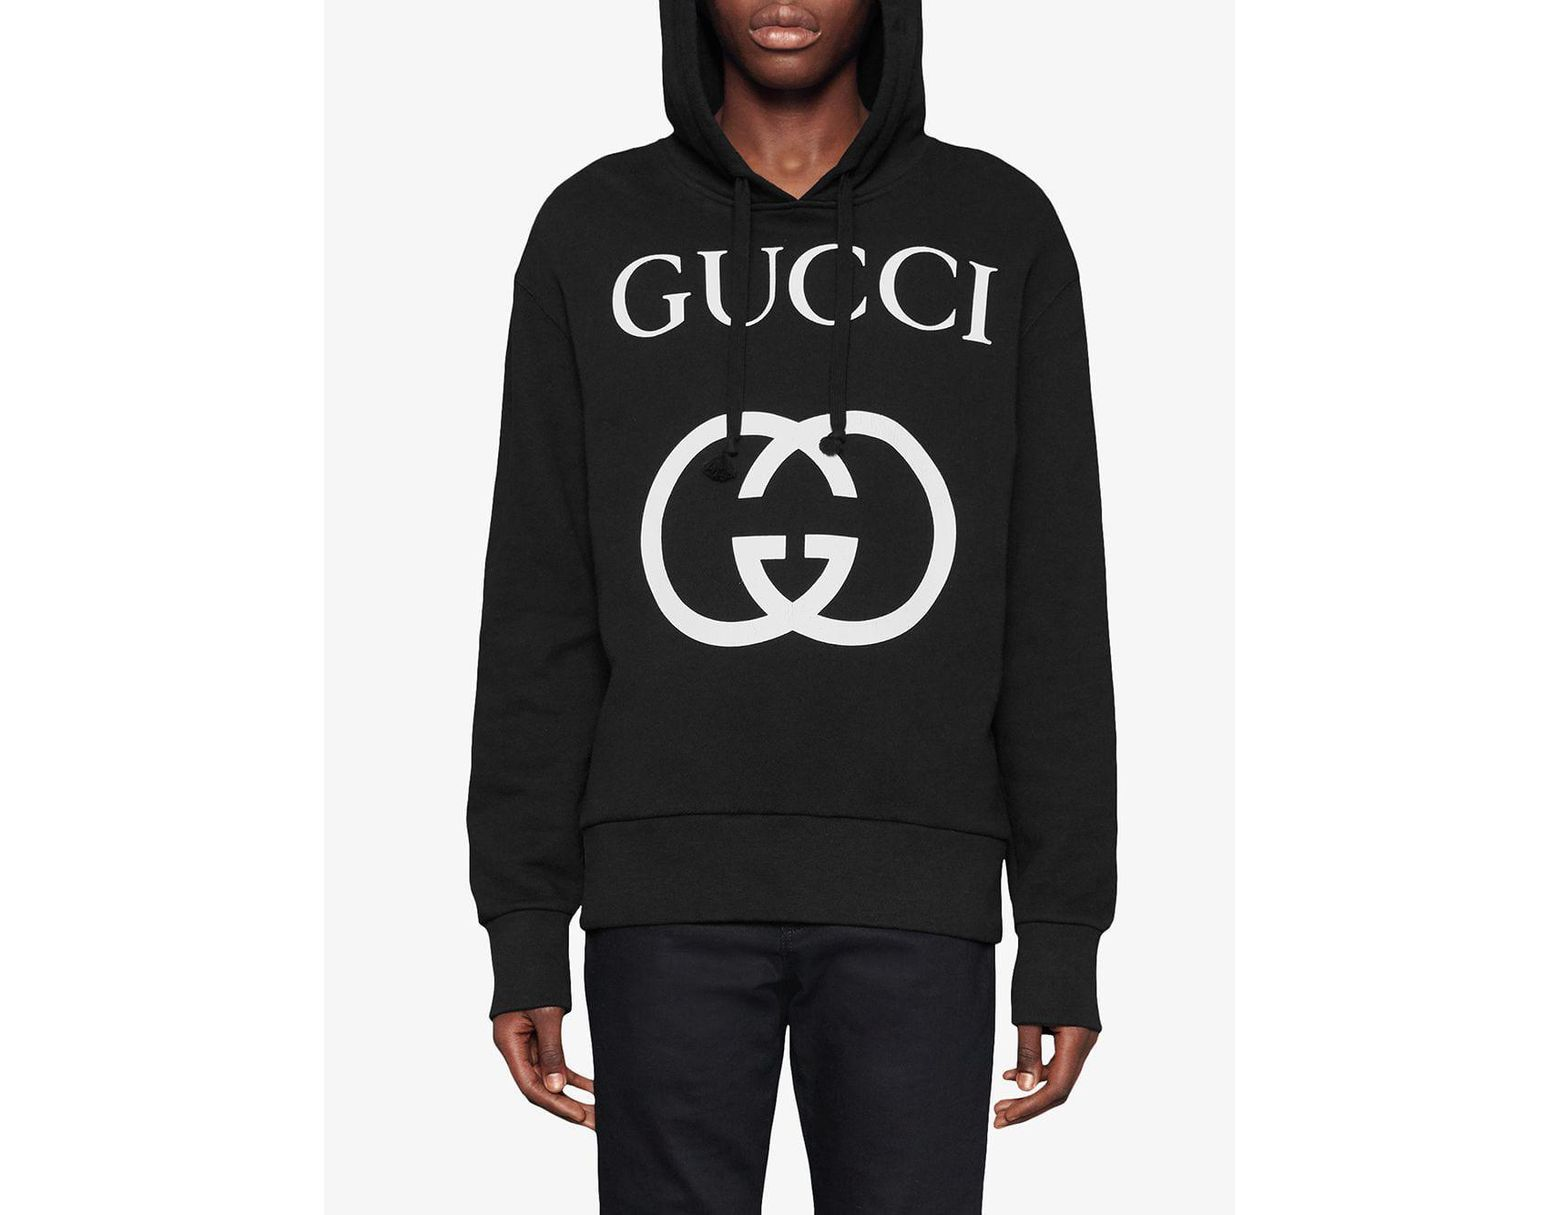 1cc0b7aa1 Gucci Hooded Sweatshirt With Interlocking G in Black for Men - Lyst